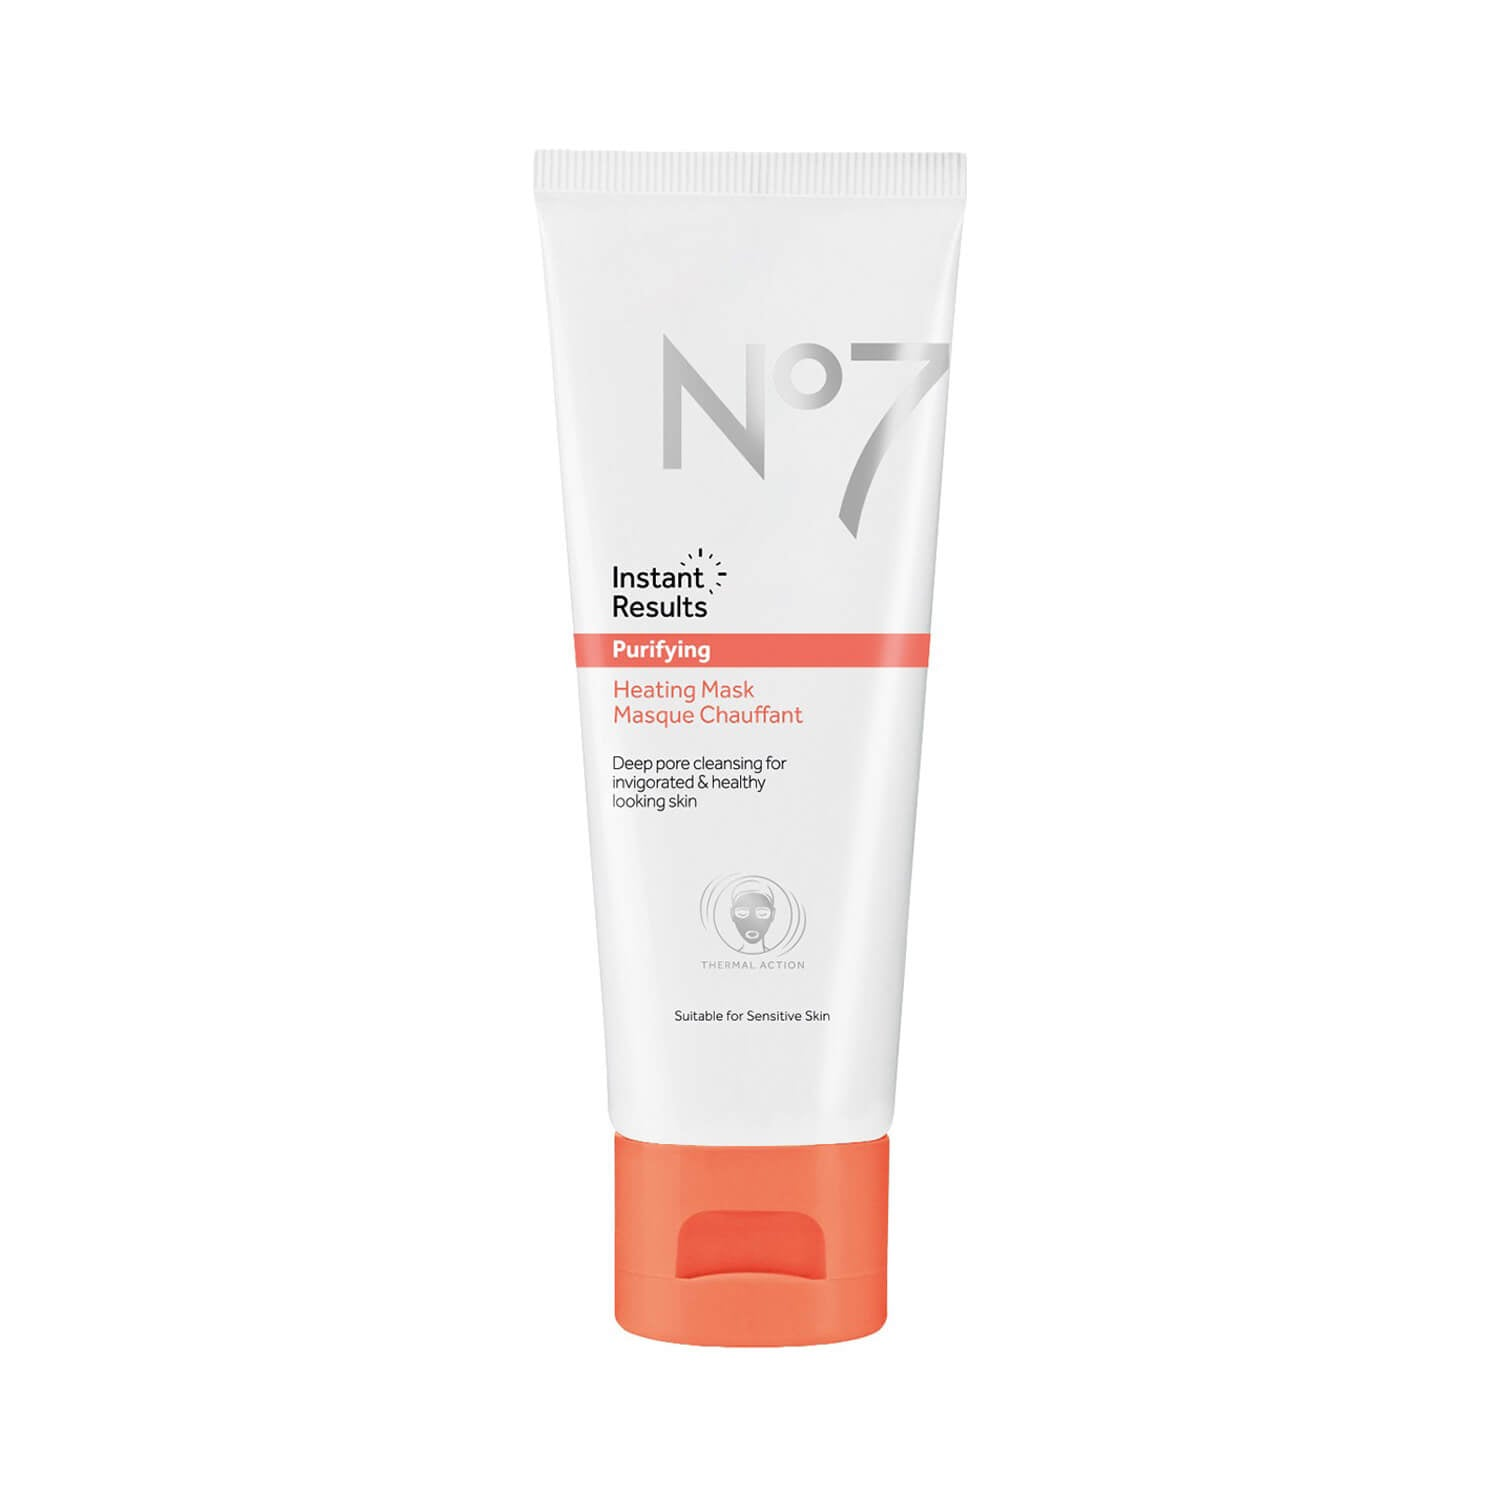 No7 Instant Results Purifying Heating Mask